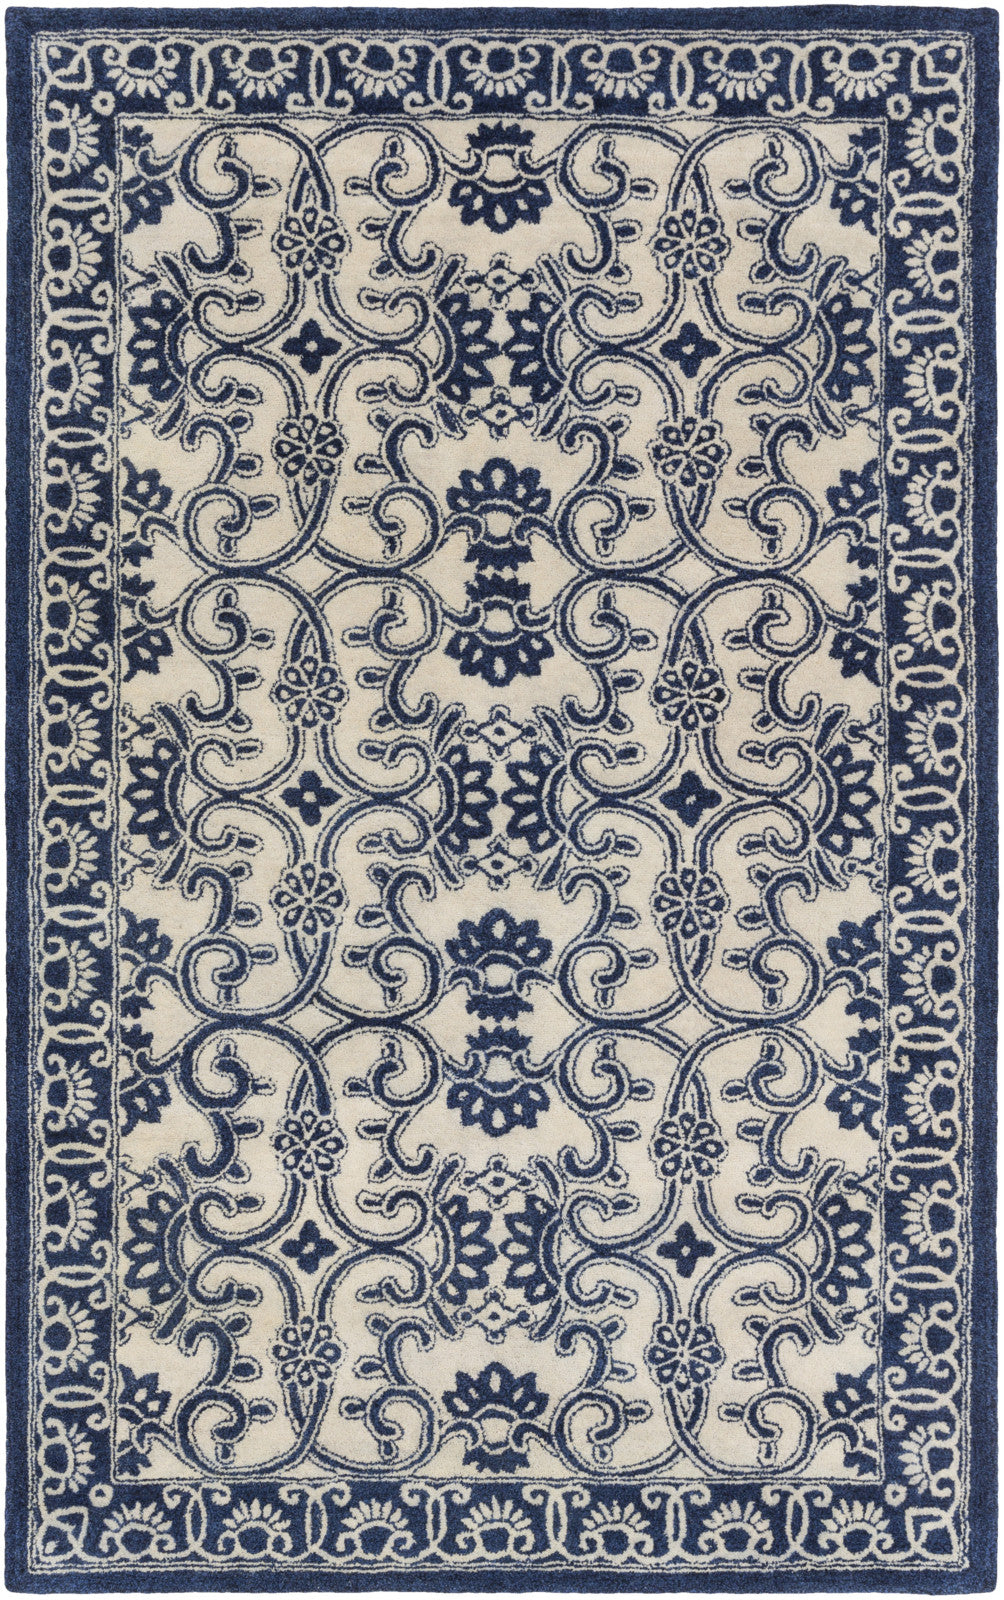 Surya SMI-2158 Blue Area Rug by Smithsonian